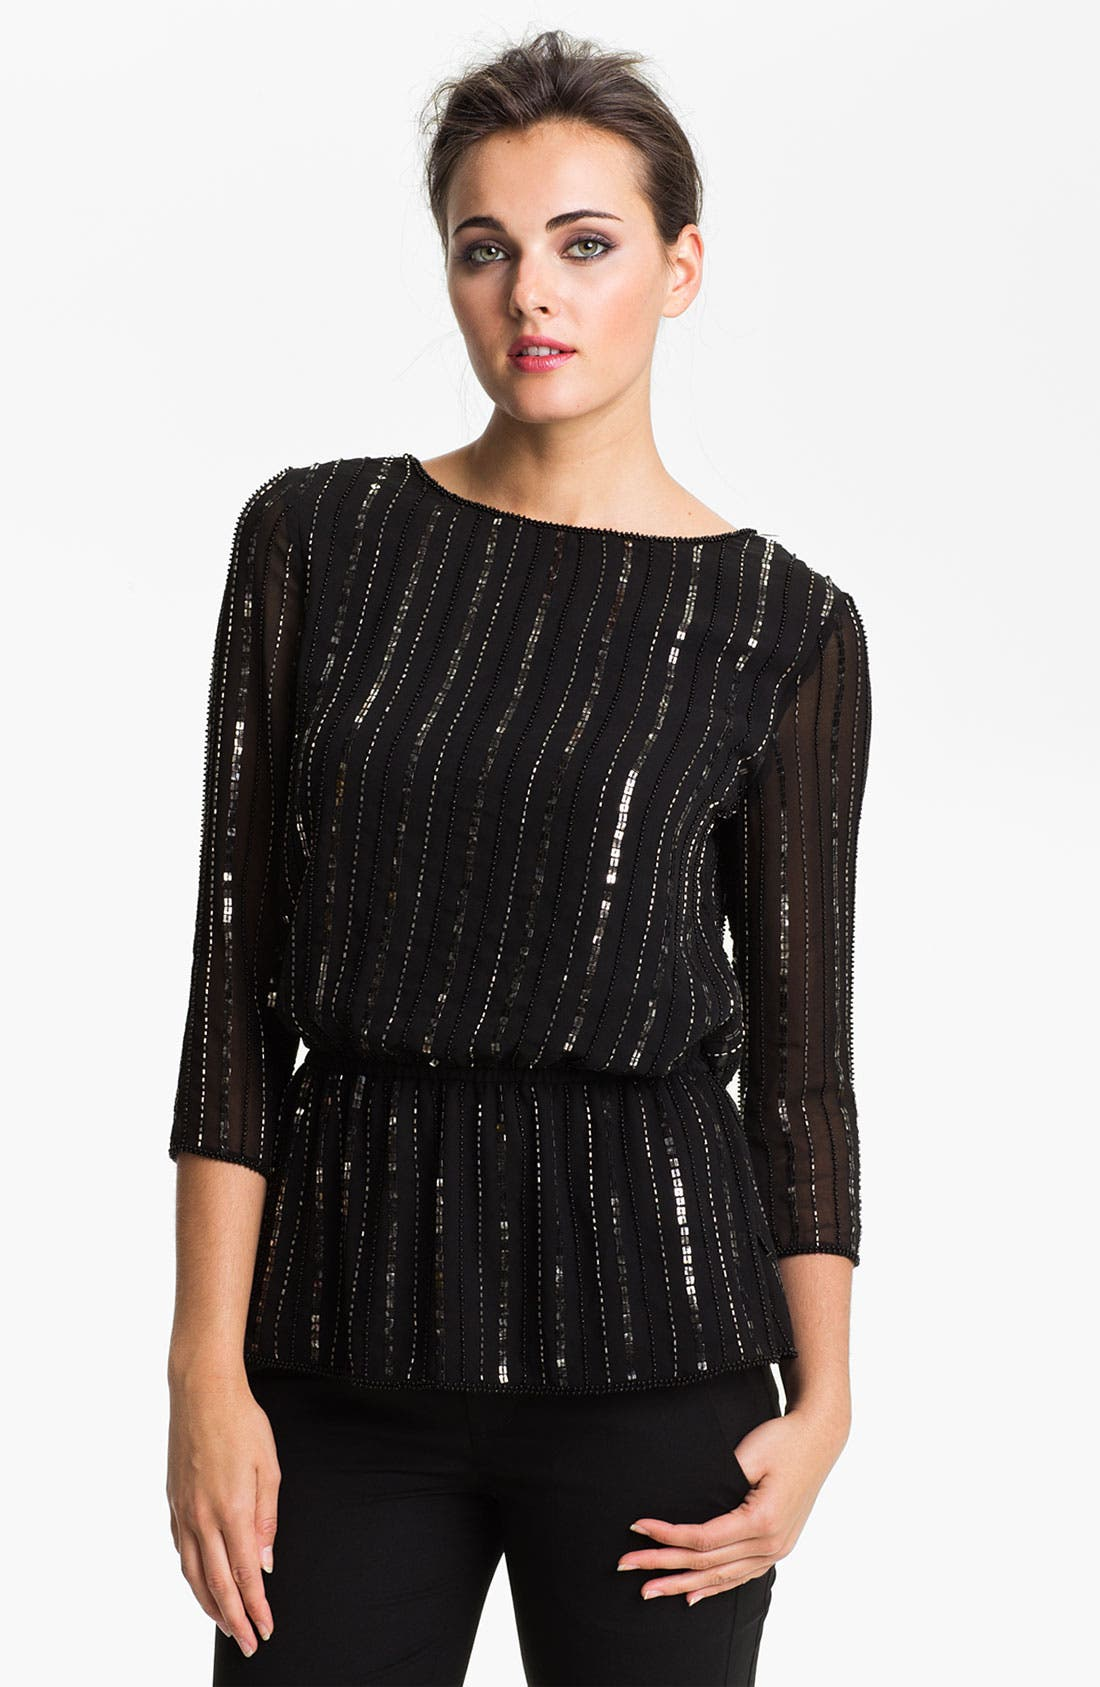 Alternate Image 1 Selected - Adrianna Papell Sequin & Bead Chiffon Blouson Top